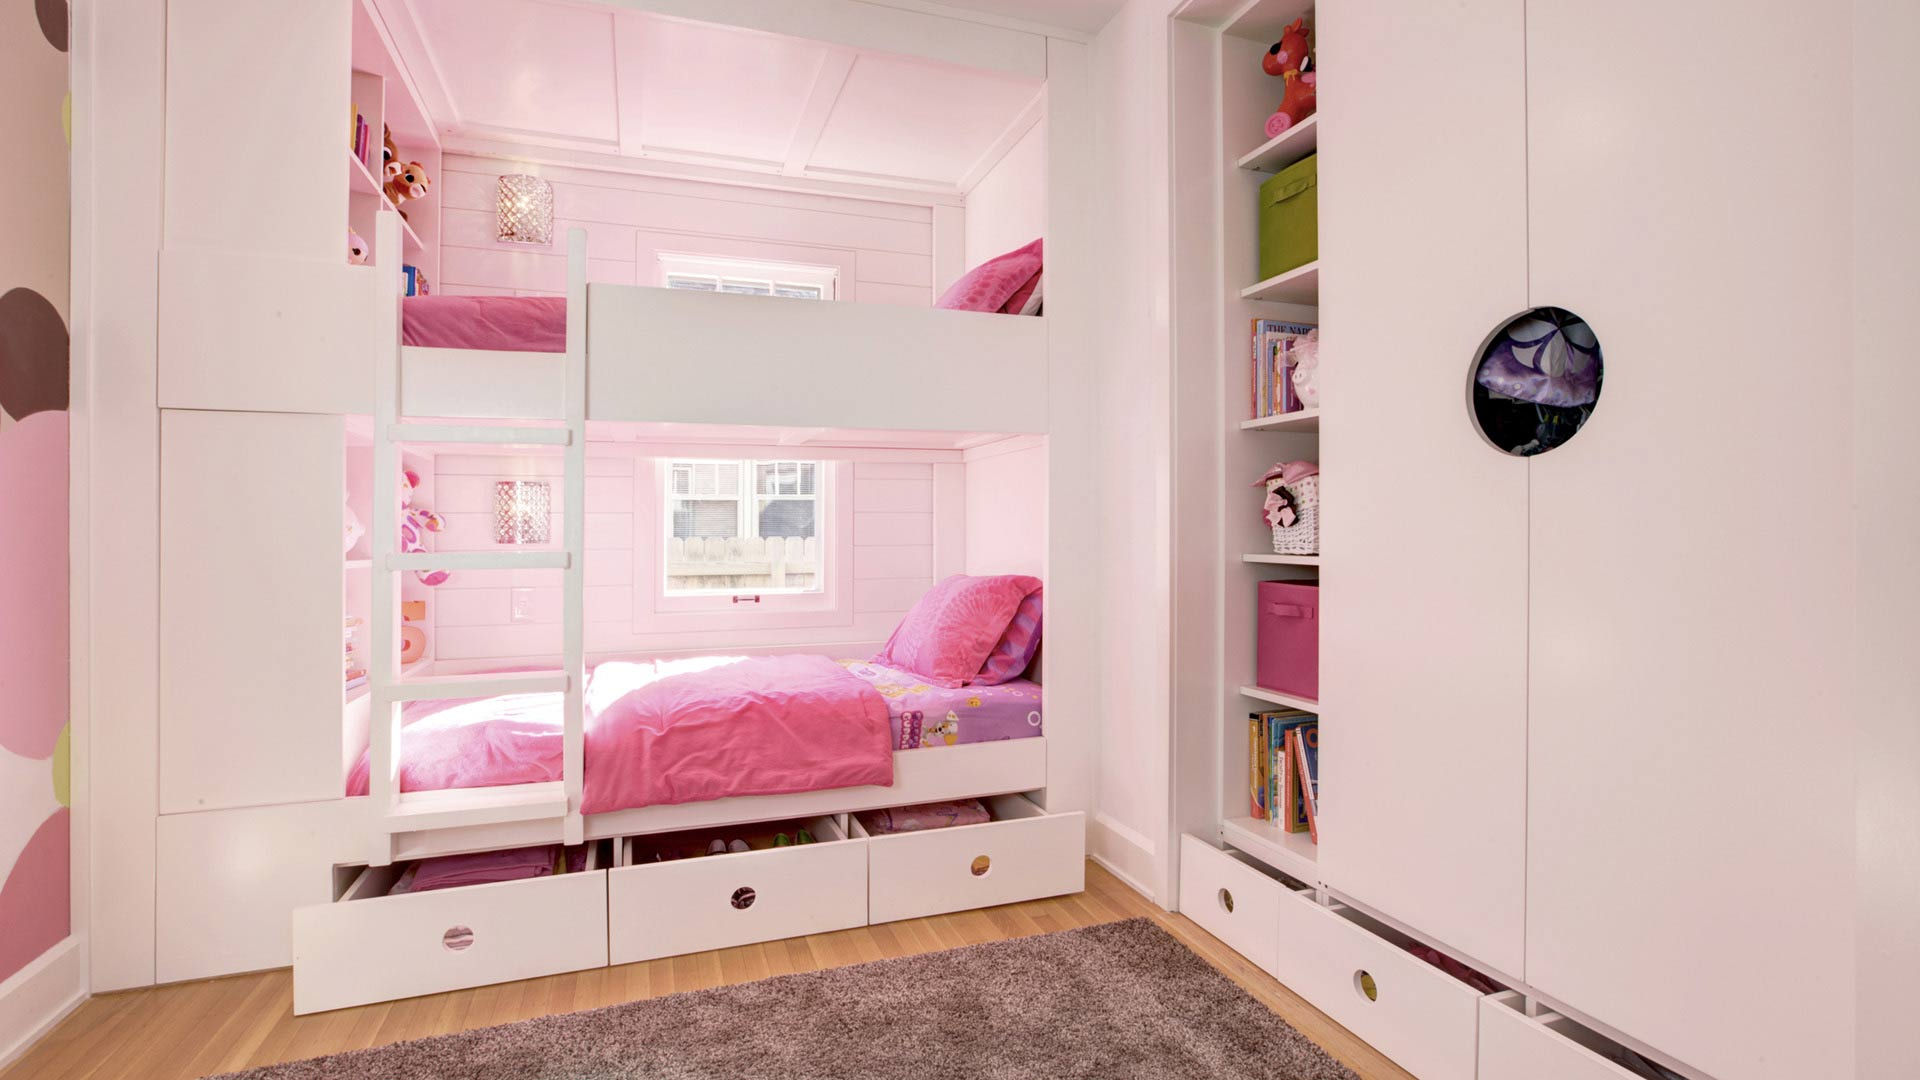 New custom bunk beds include cubbies for display, drawers for storage, and custom closet for toys and clothes - Classic Irvington Tudor Remodel - Indianapolis, IN